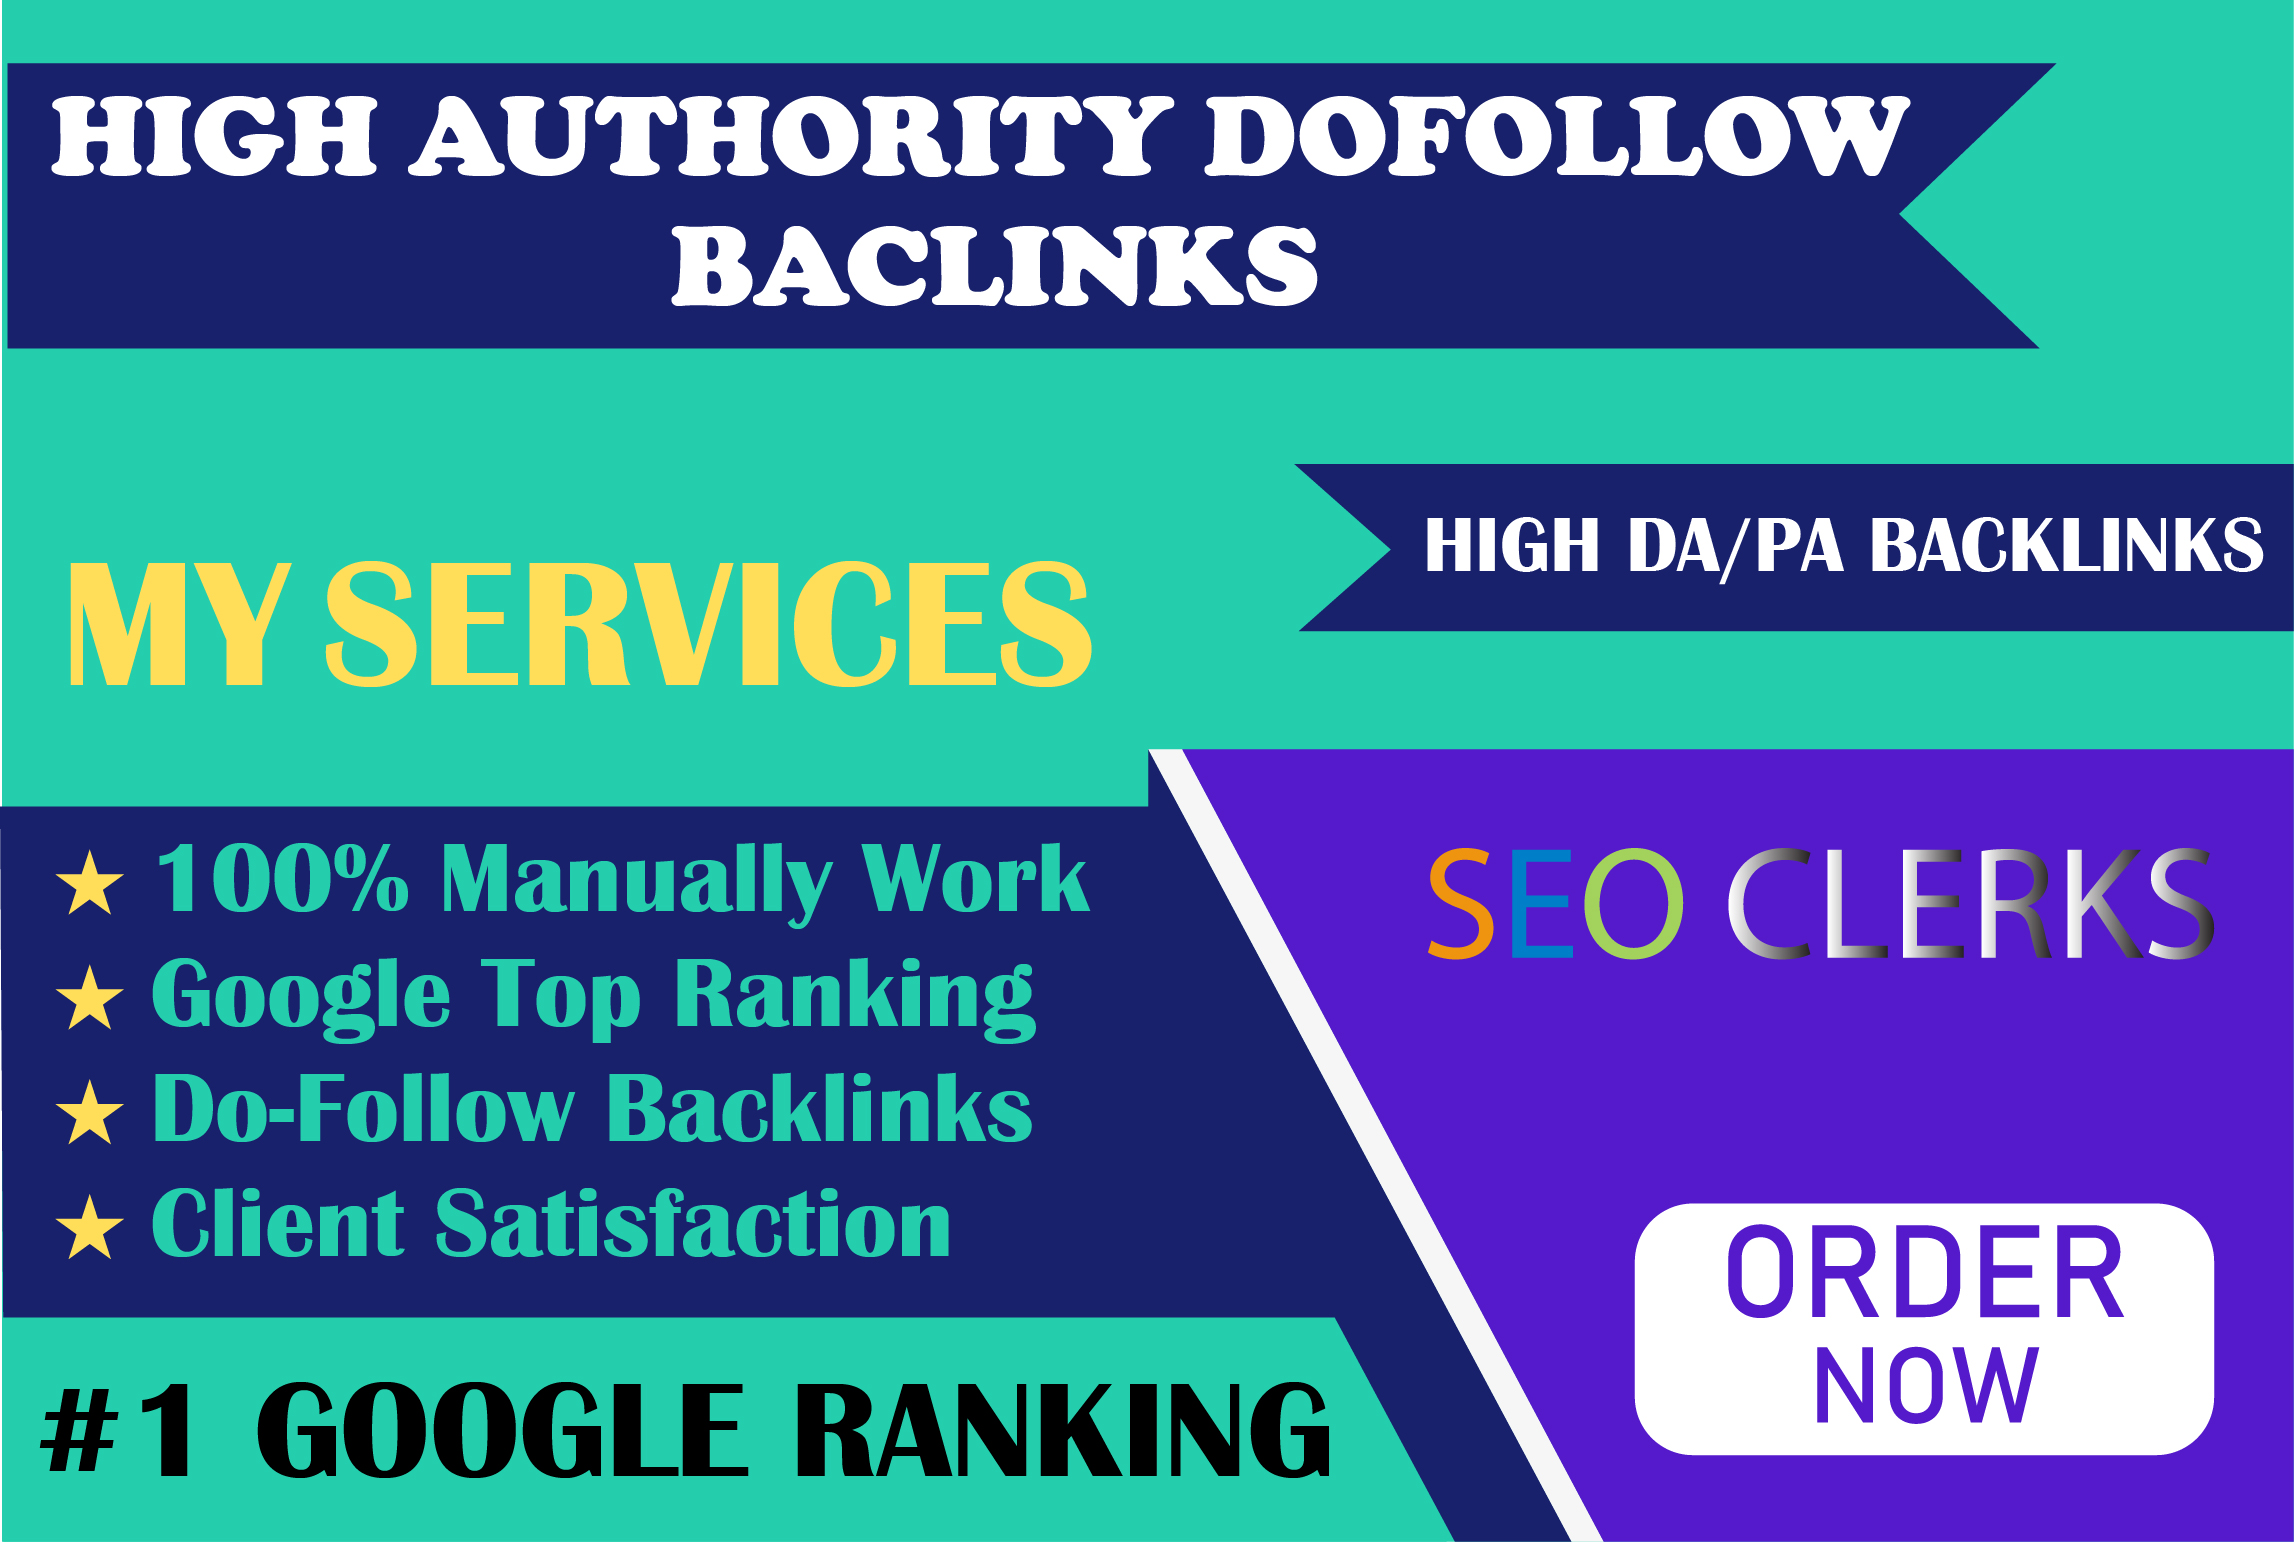 I will manually create high authority white hat SEO link building to increase Google ranking